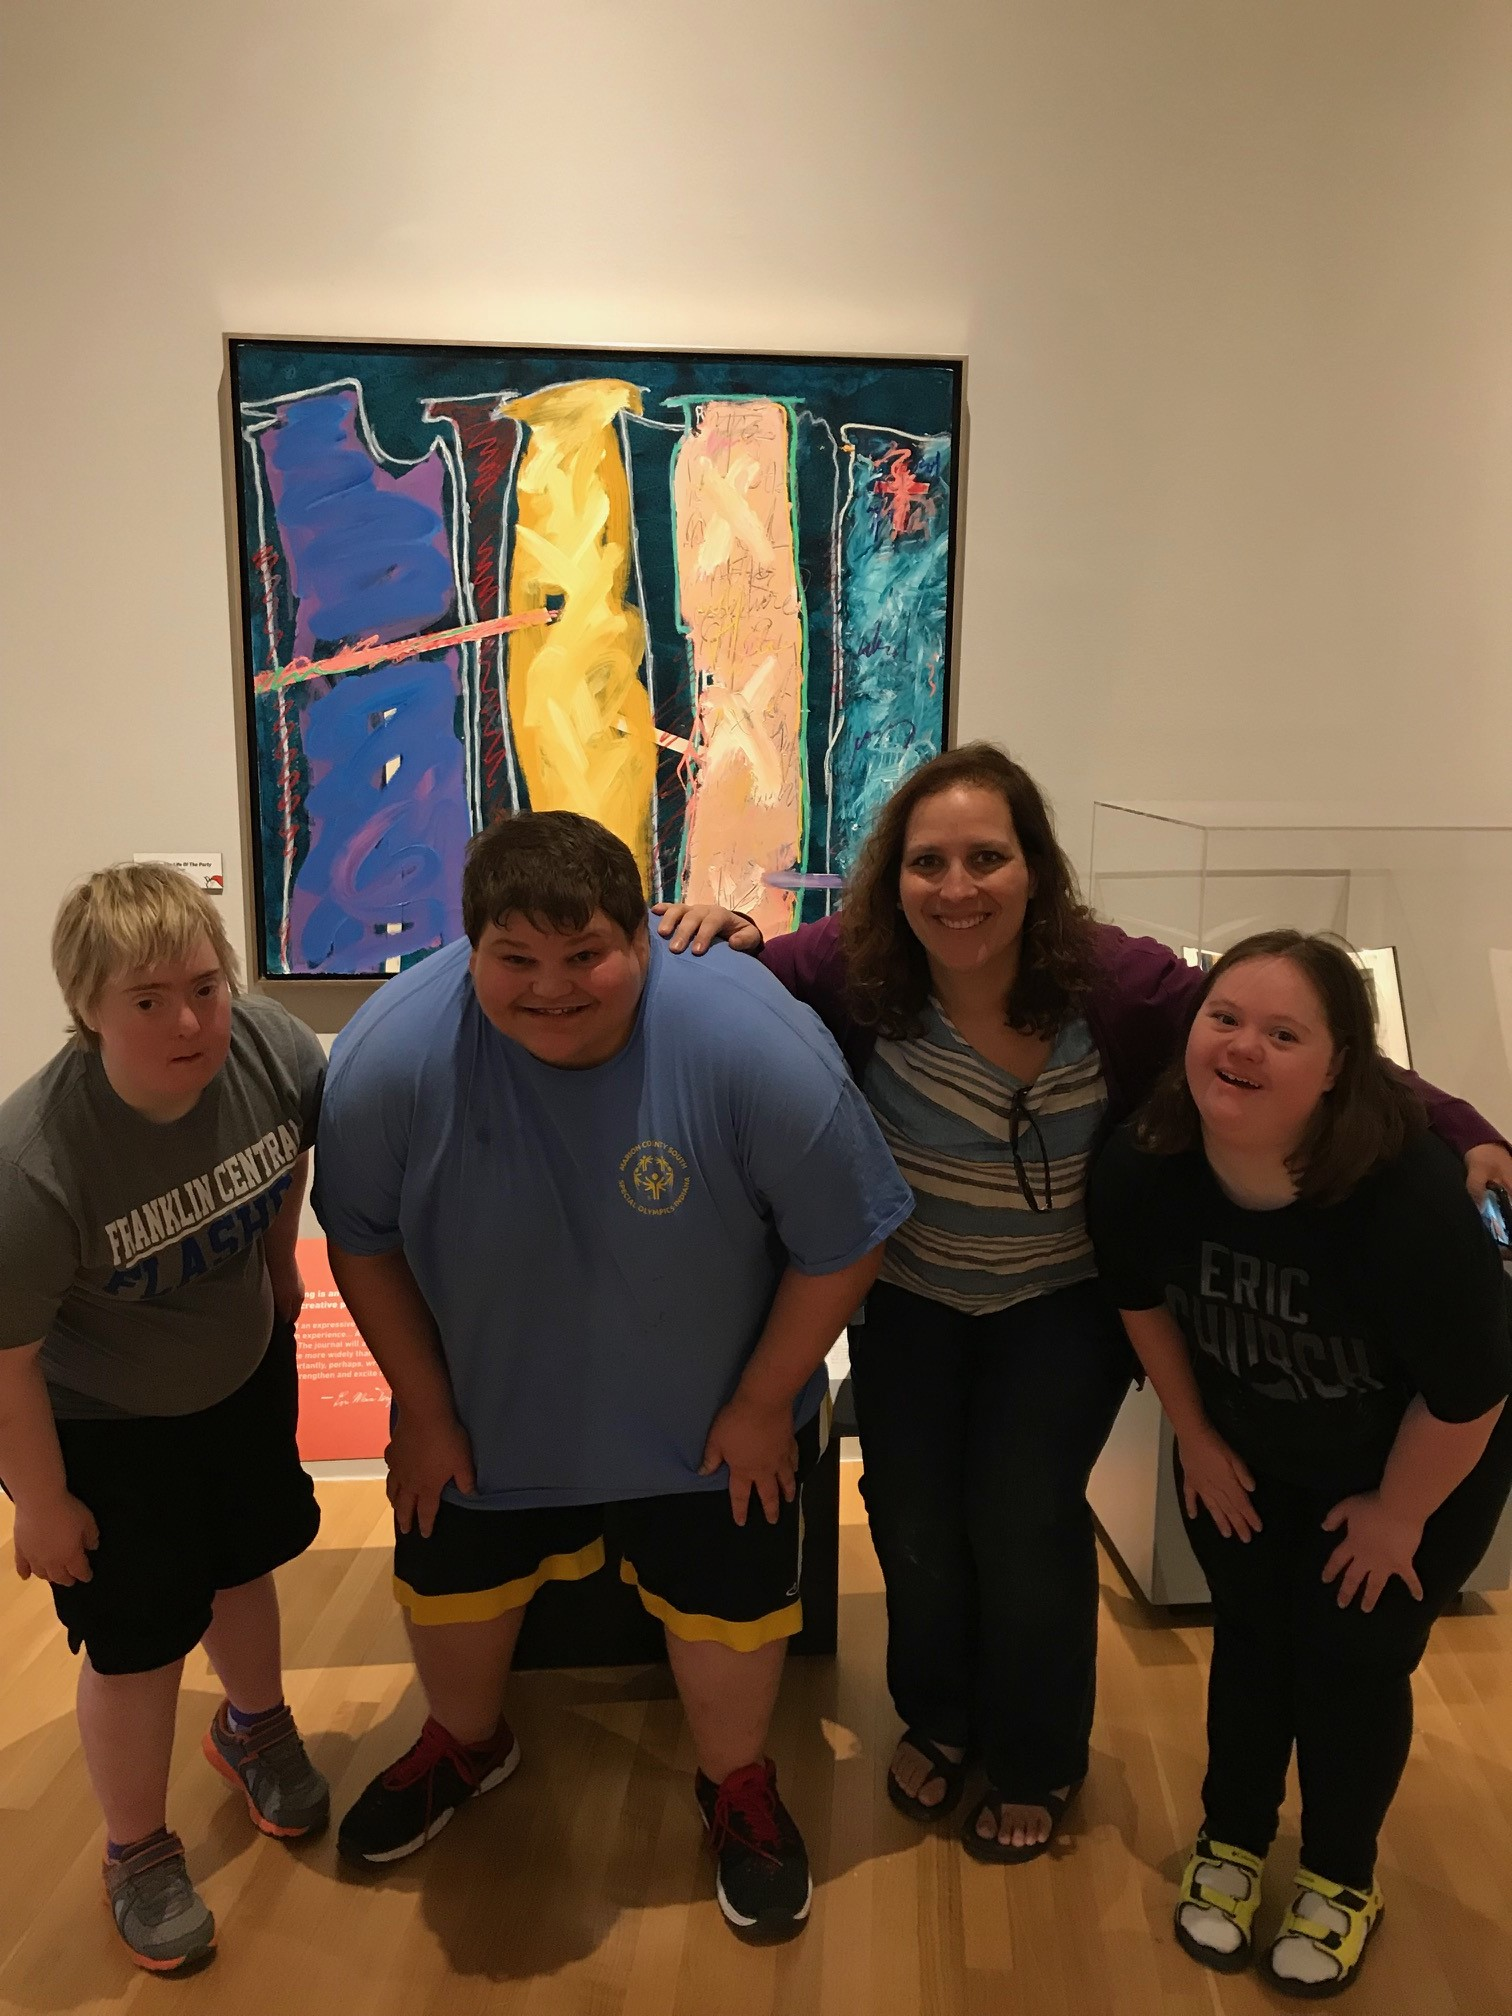 Trip to the Indiana State Museum